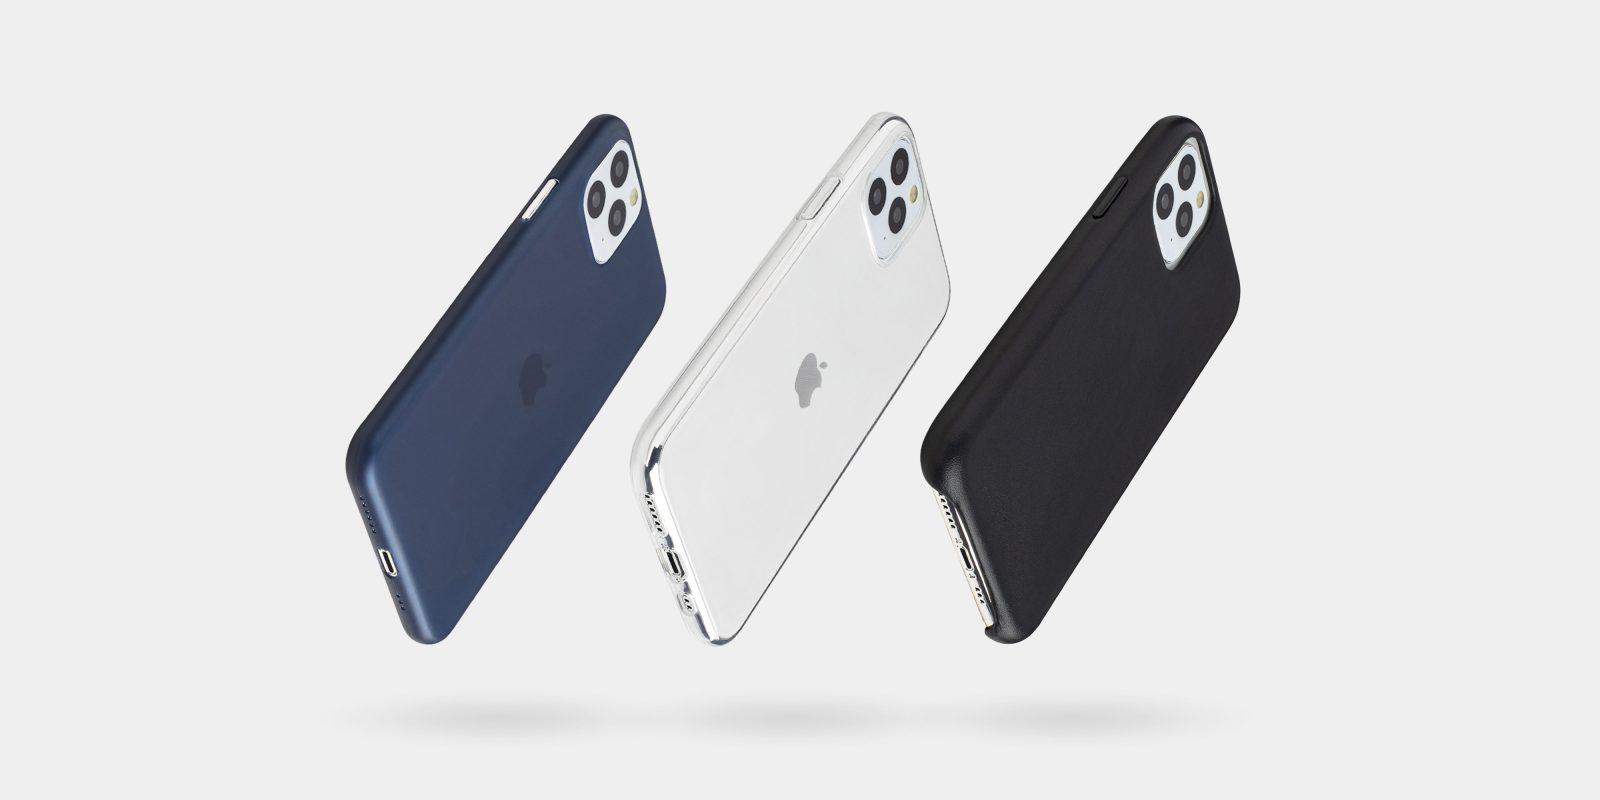 Totallee launches super thin cases for iPhone 11, iPhone 11 Pro, and 11 Pro Max